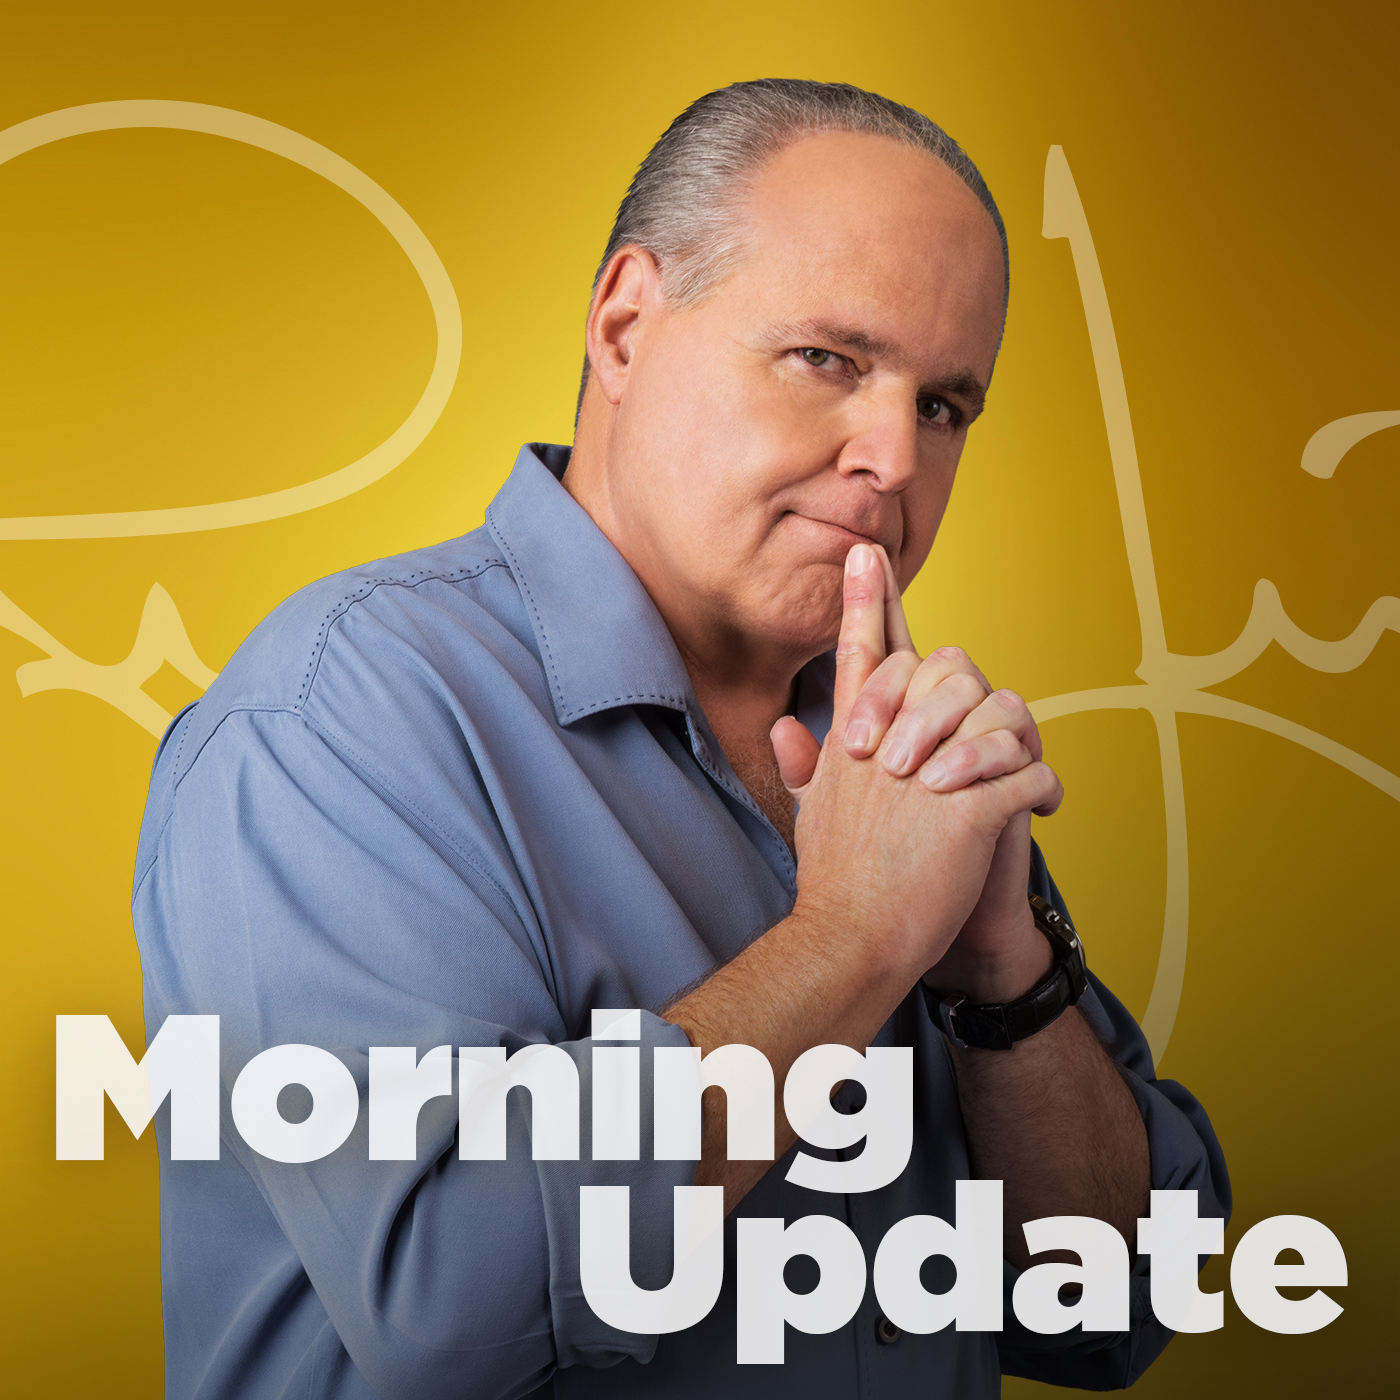 Rush Limbaugh Jan 10, 2020